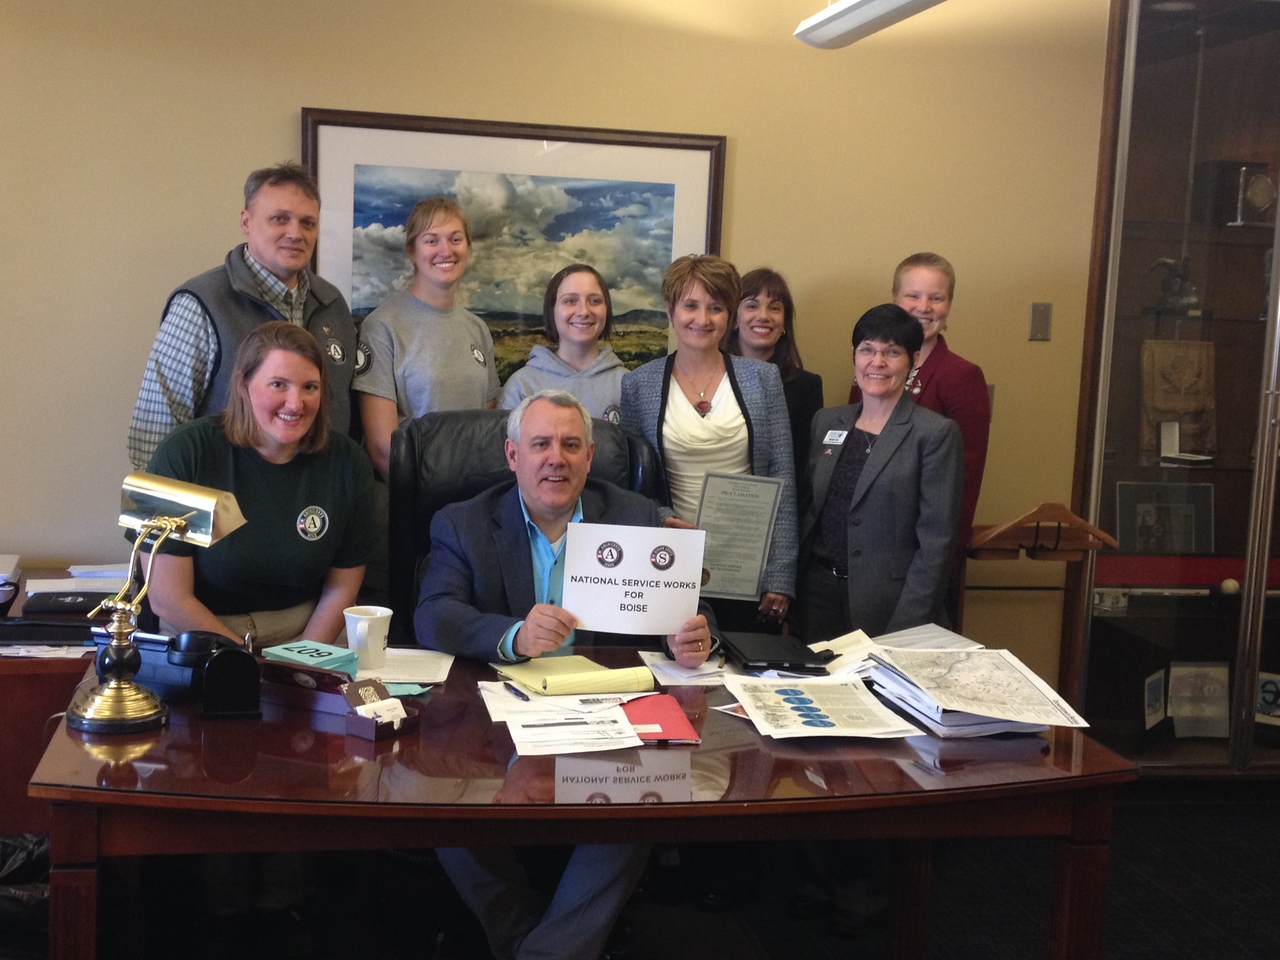 Mayor David Bieter (Boise, ID) alongside national service participants and staff, including Kristen Tracy, President of the National Association of Foster Grandparent Project Directors.   Mayor Bieter issued a mayoral proclamation in honor of the Mayors Day of Recognition for National Service on April 1, 2014. Corporation for National and Community Service photo.